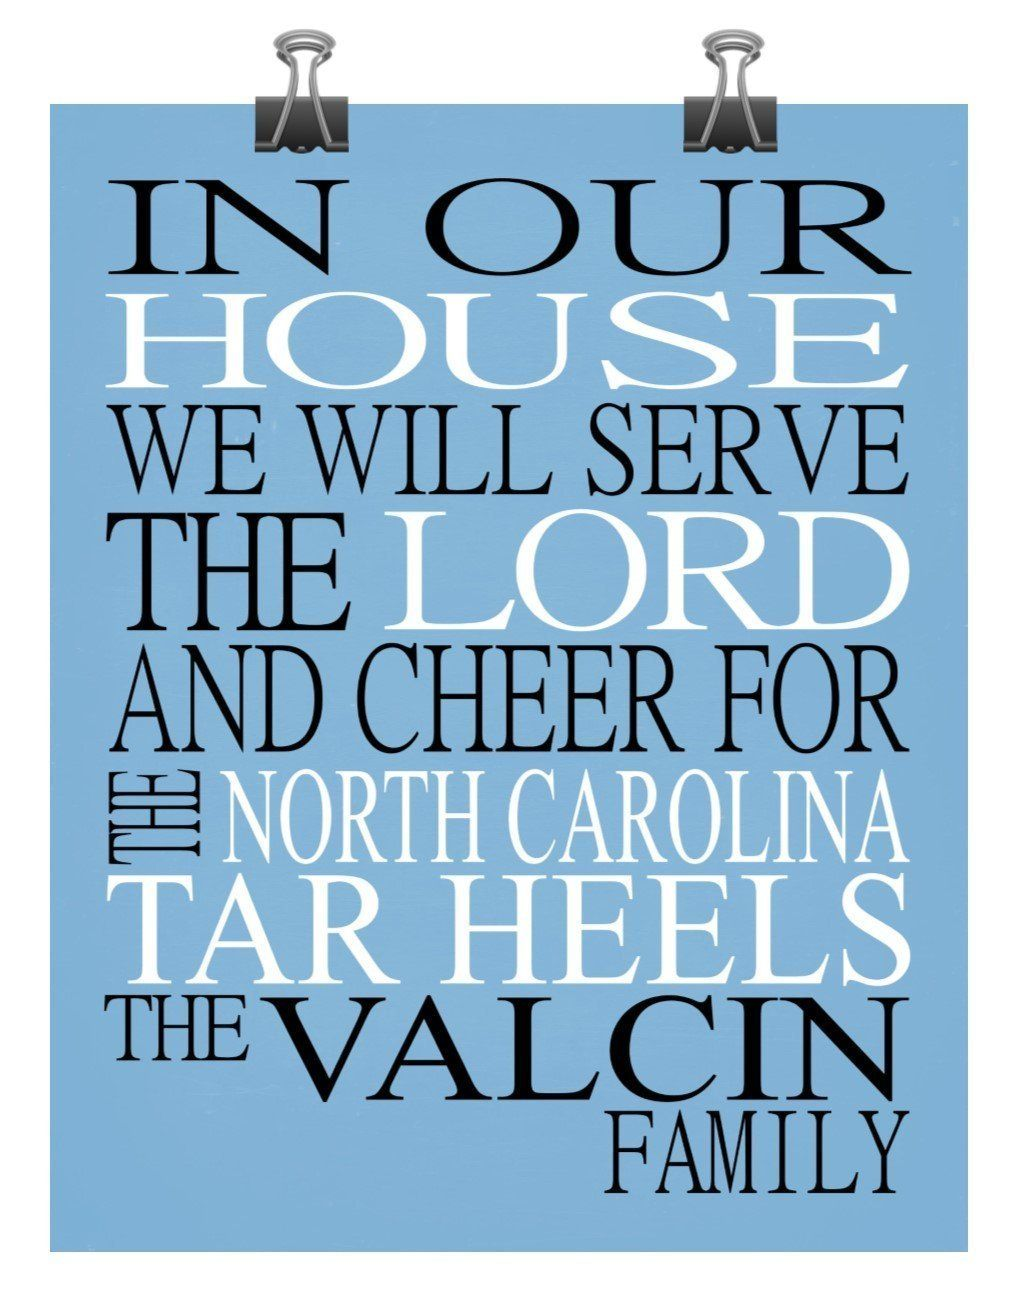 In our house we will serve the lord and cheer for the unc north